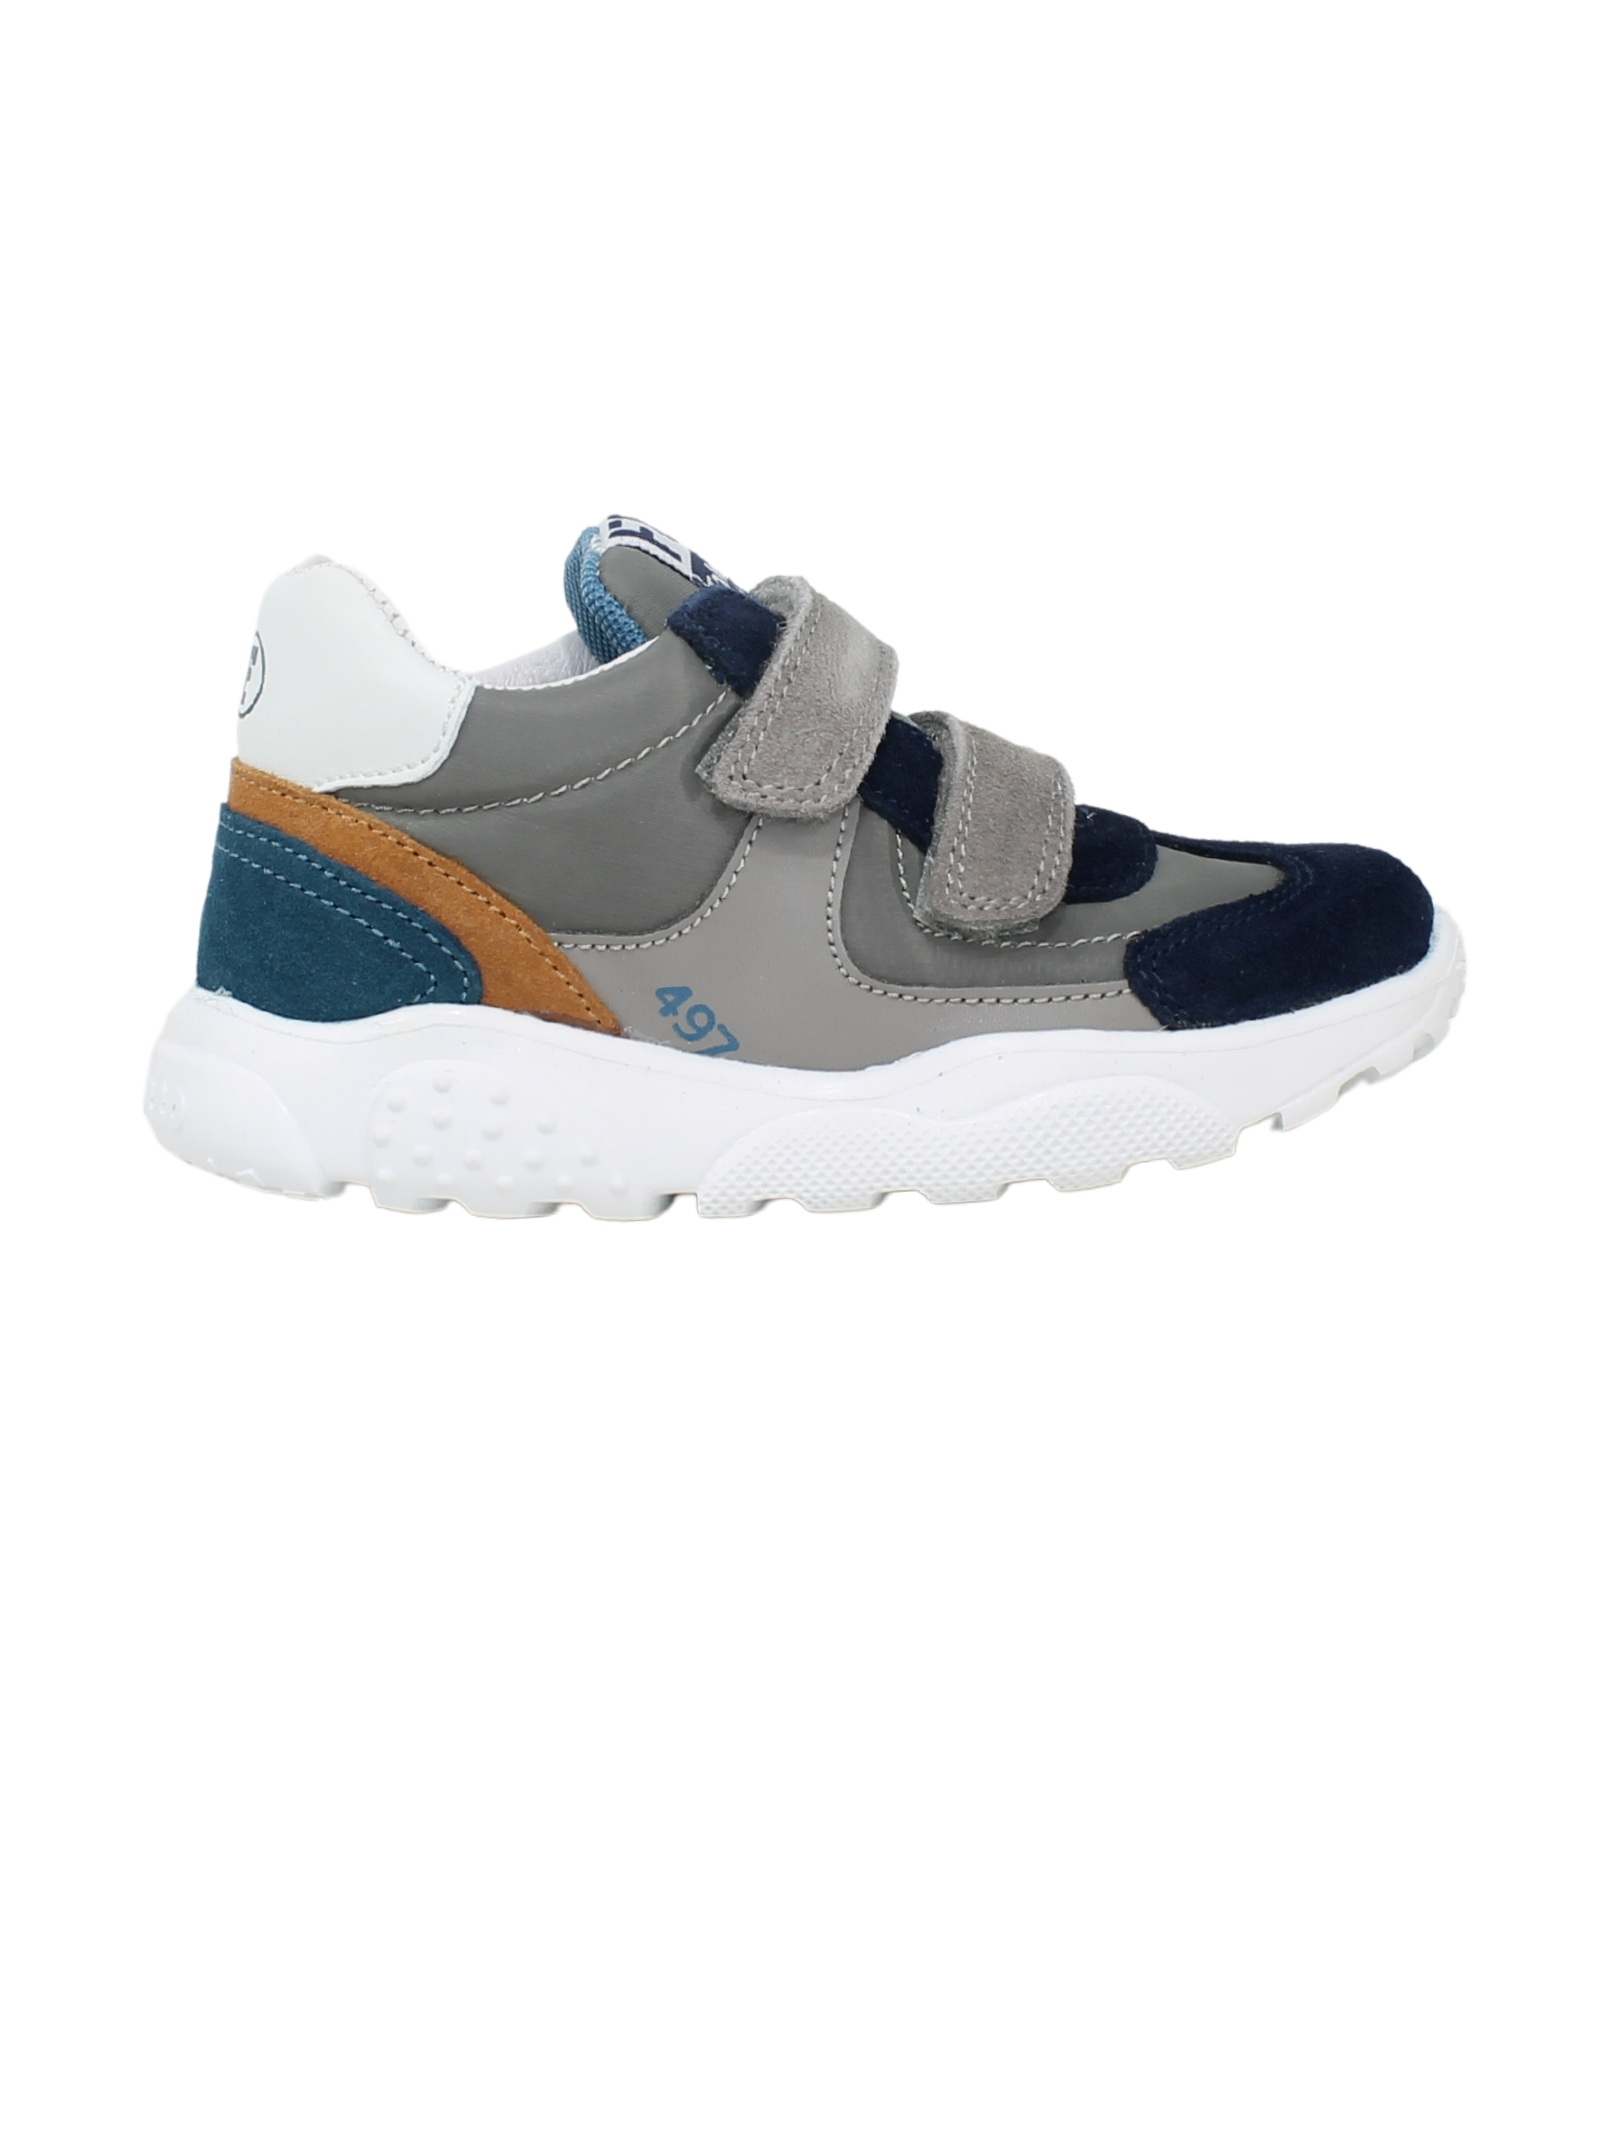 Milos Sneakers Child FALCOTTO | Sneakers | 0012016130012C41NAVY